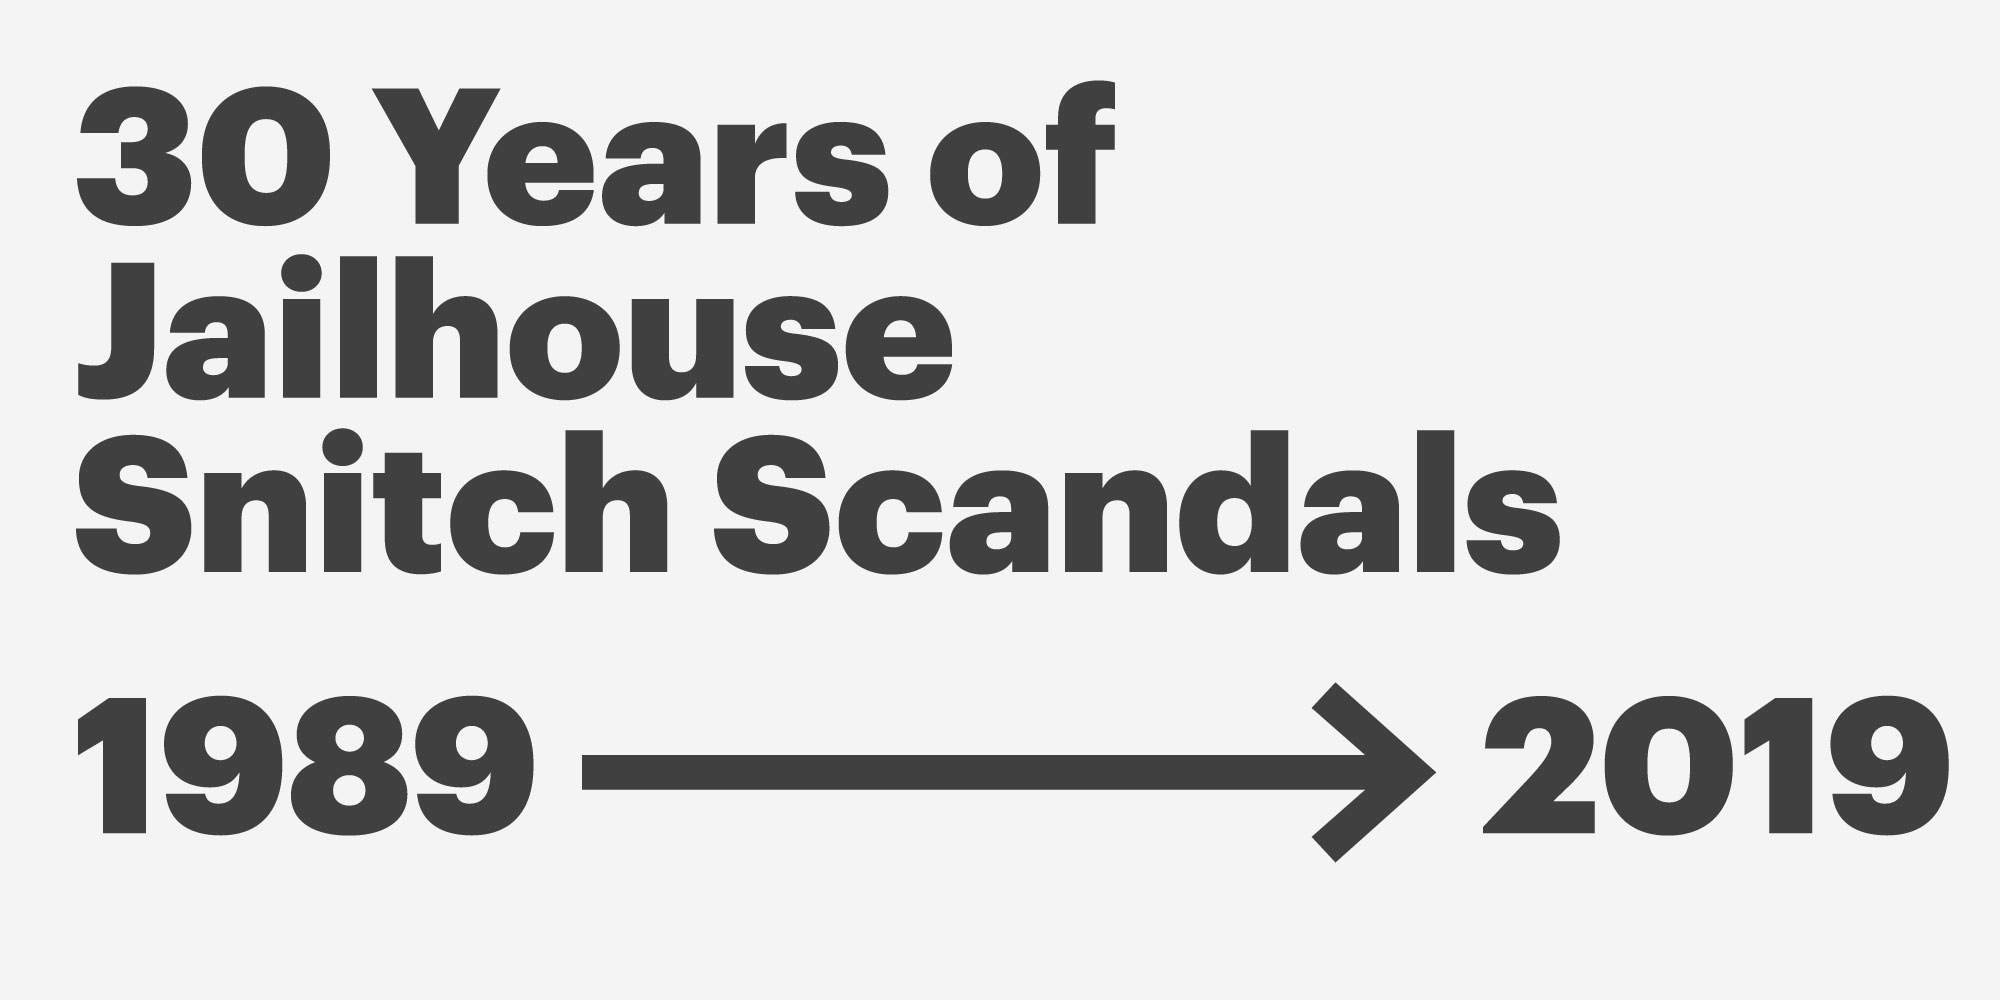 30 Years of Jailhouse Snitch Scandals